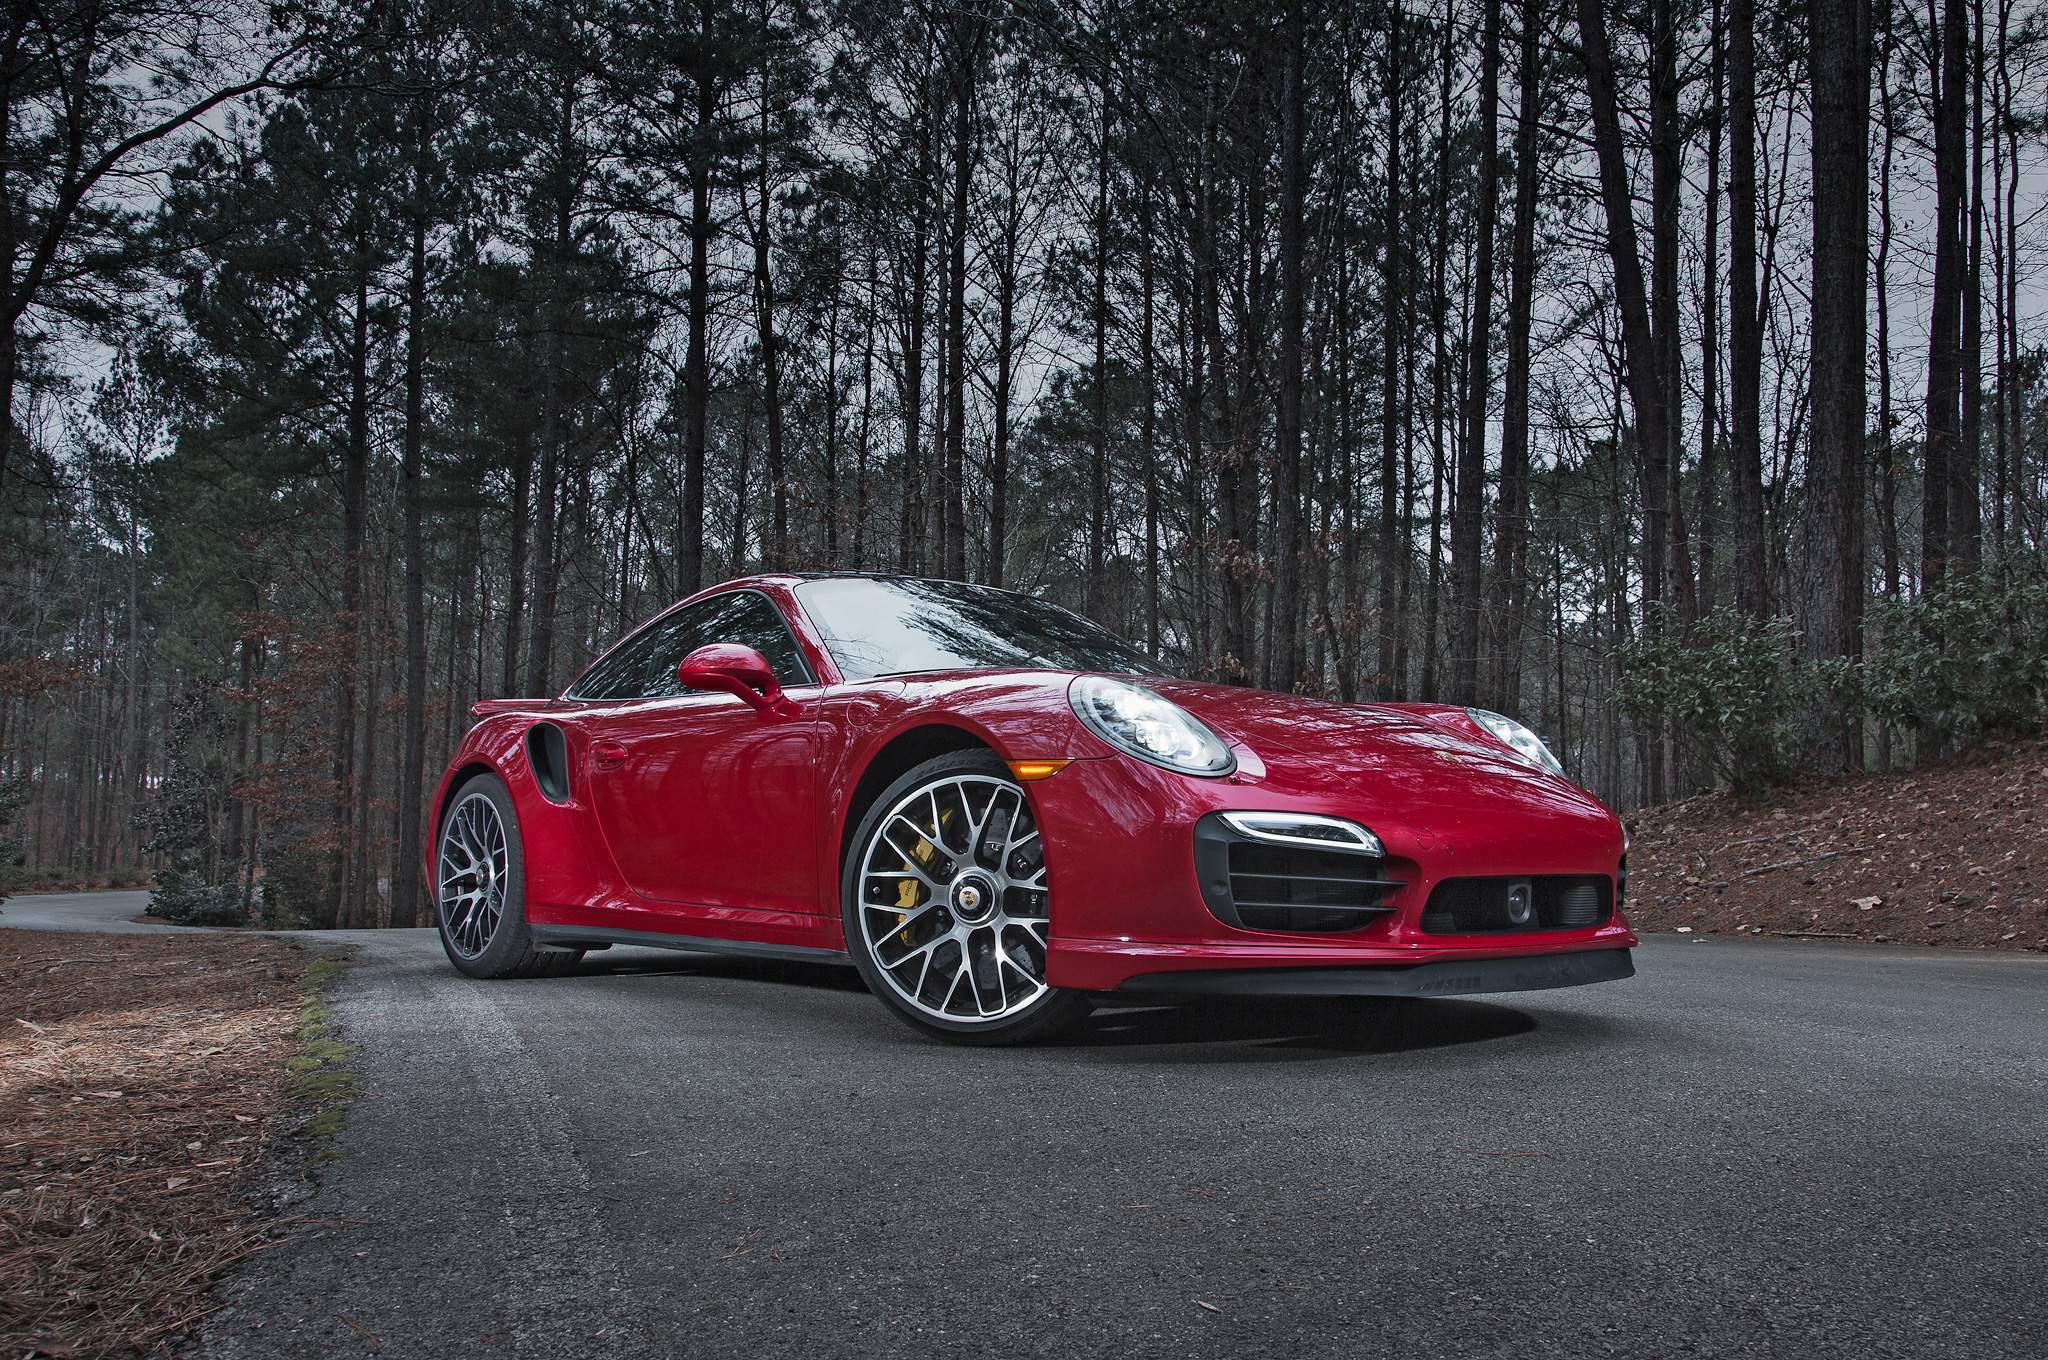 2014 Porsche 911 Turbo S For Sale in Boerne